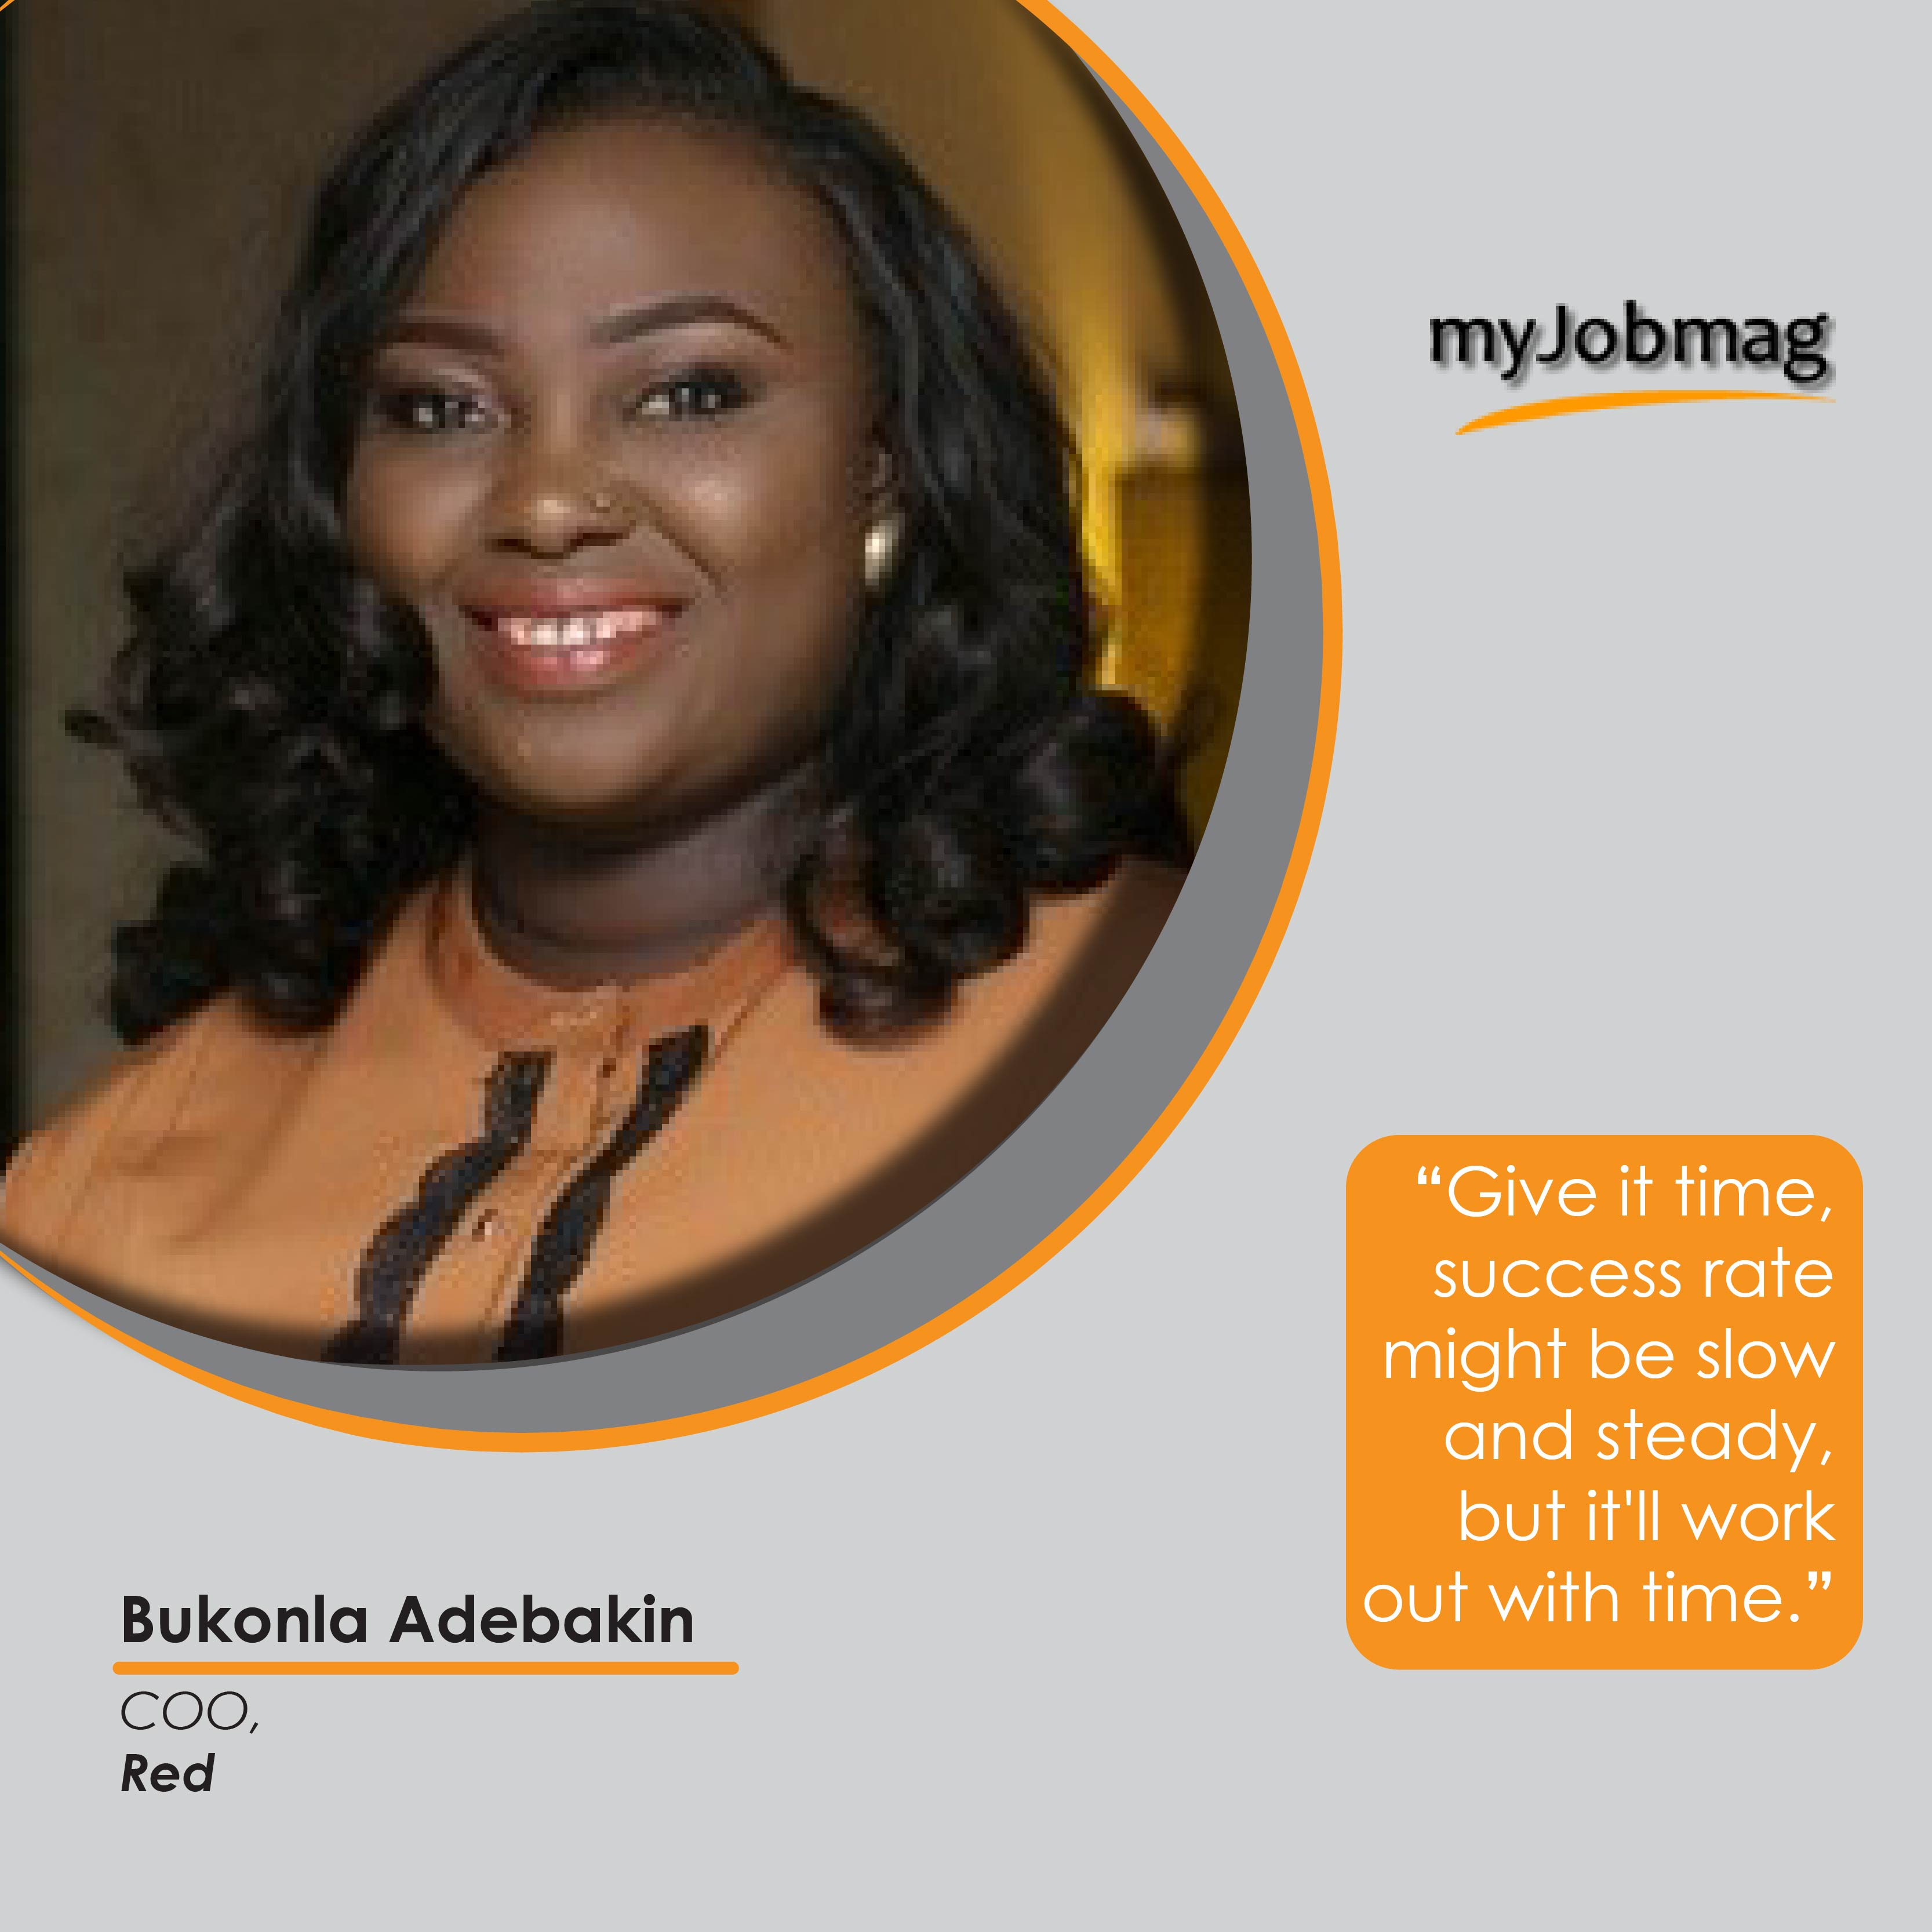 Bukonla Adebakin career advice MyJobMag